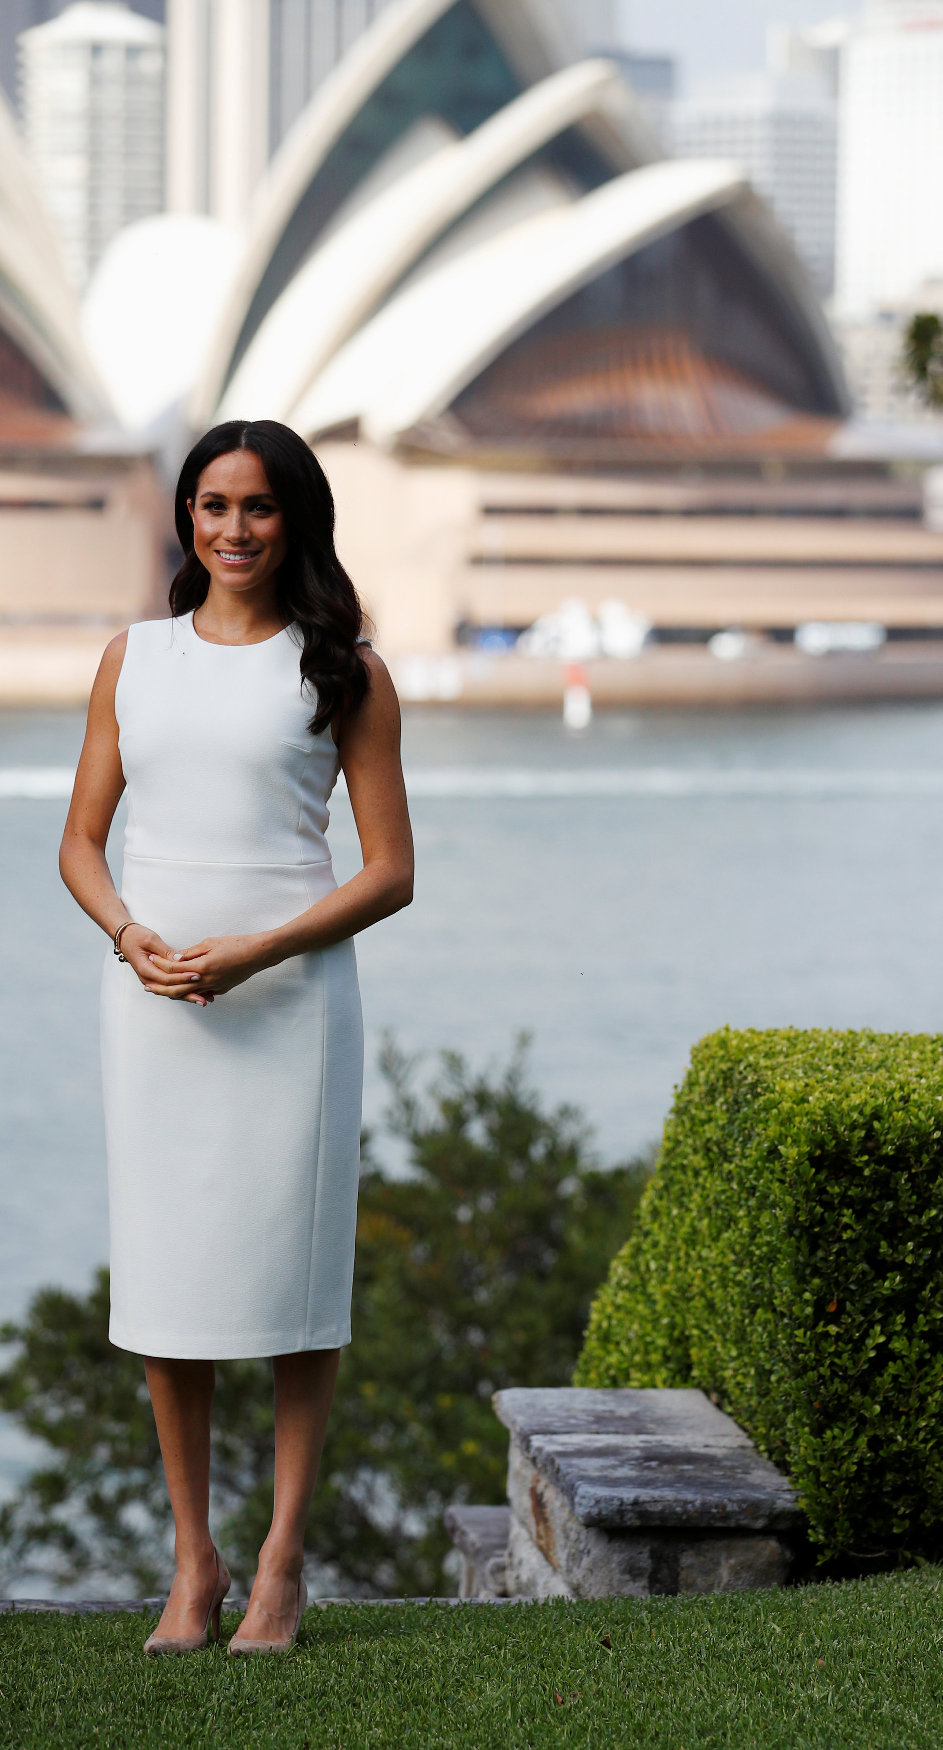 SYDNEY, AUSTRALIA - OCTOBER 16: Meghan, Duchess of Sussex poses during a Welcome Event at Admiralty House on October 16, 2018 in Sydney, Australia. The Duke and Duchess of Sussex are on their official 16-day Autumn tour visiting cities in Australia, Fiji, Tonga and New Zealand. (Photo by Phil Noble -  Pool/Getty Images)